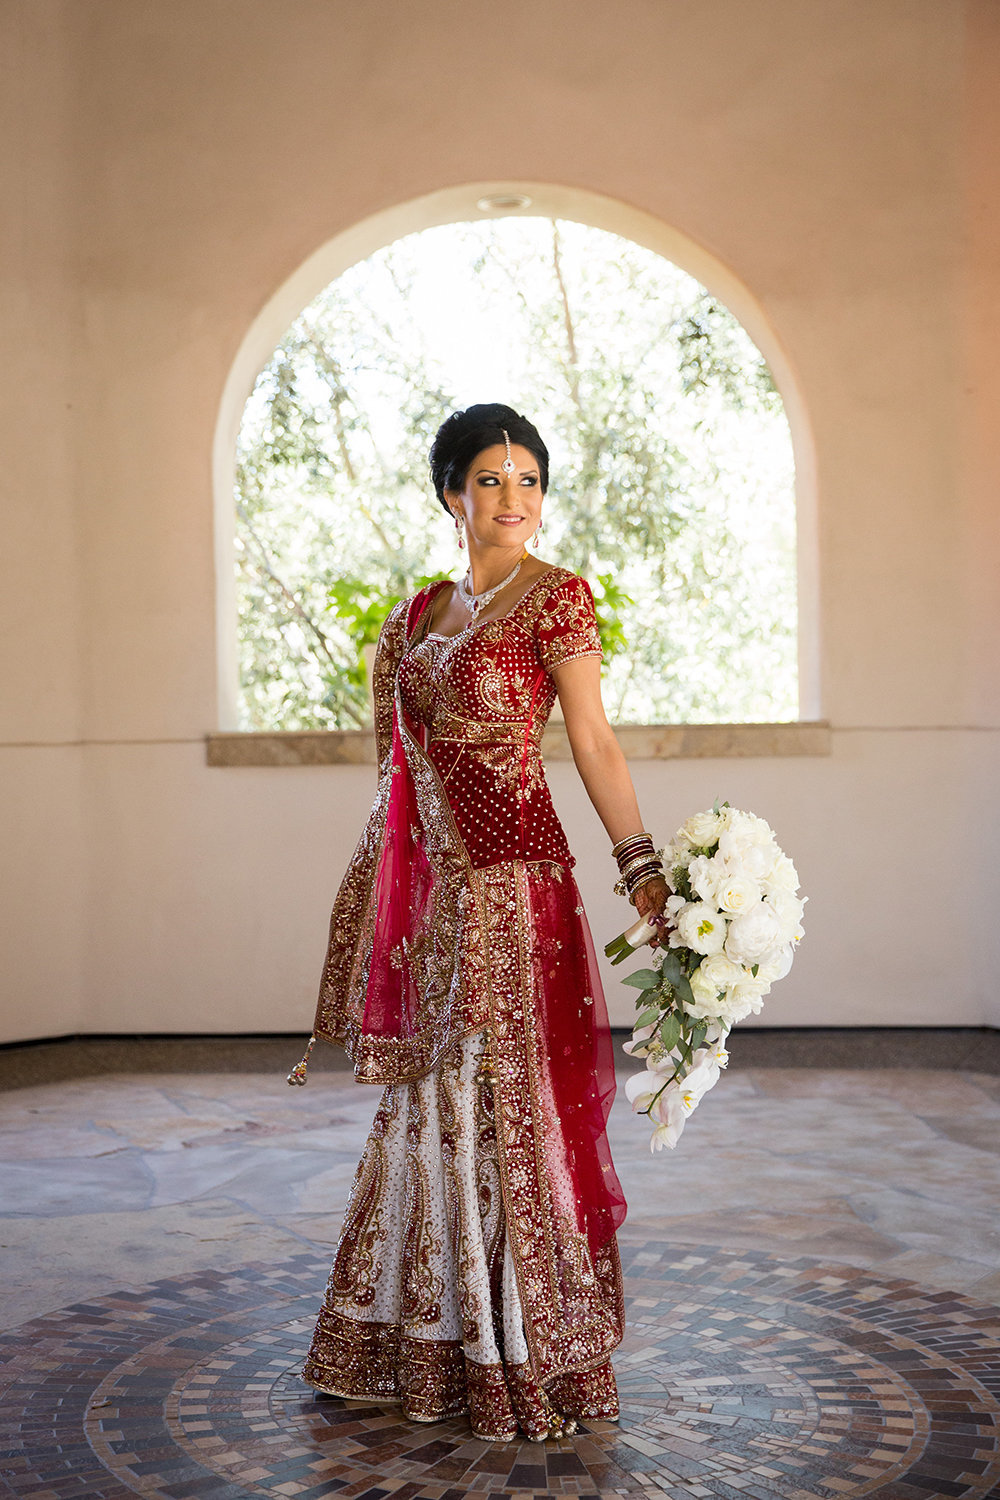 Stunning Hindu Bridal Portrait in a Lovely Sari at an  Indian Wedding at Rancho Bernardo Inn